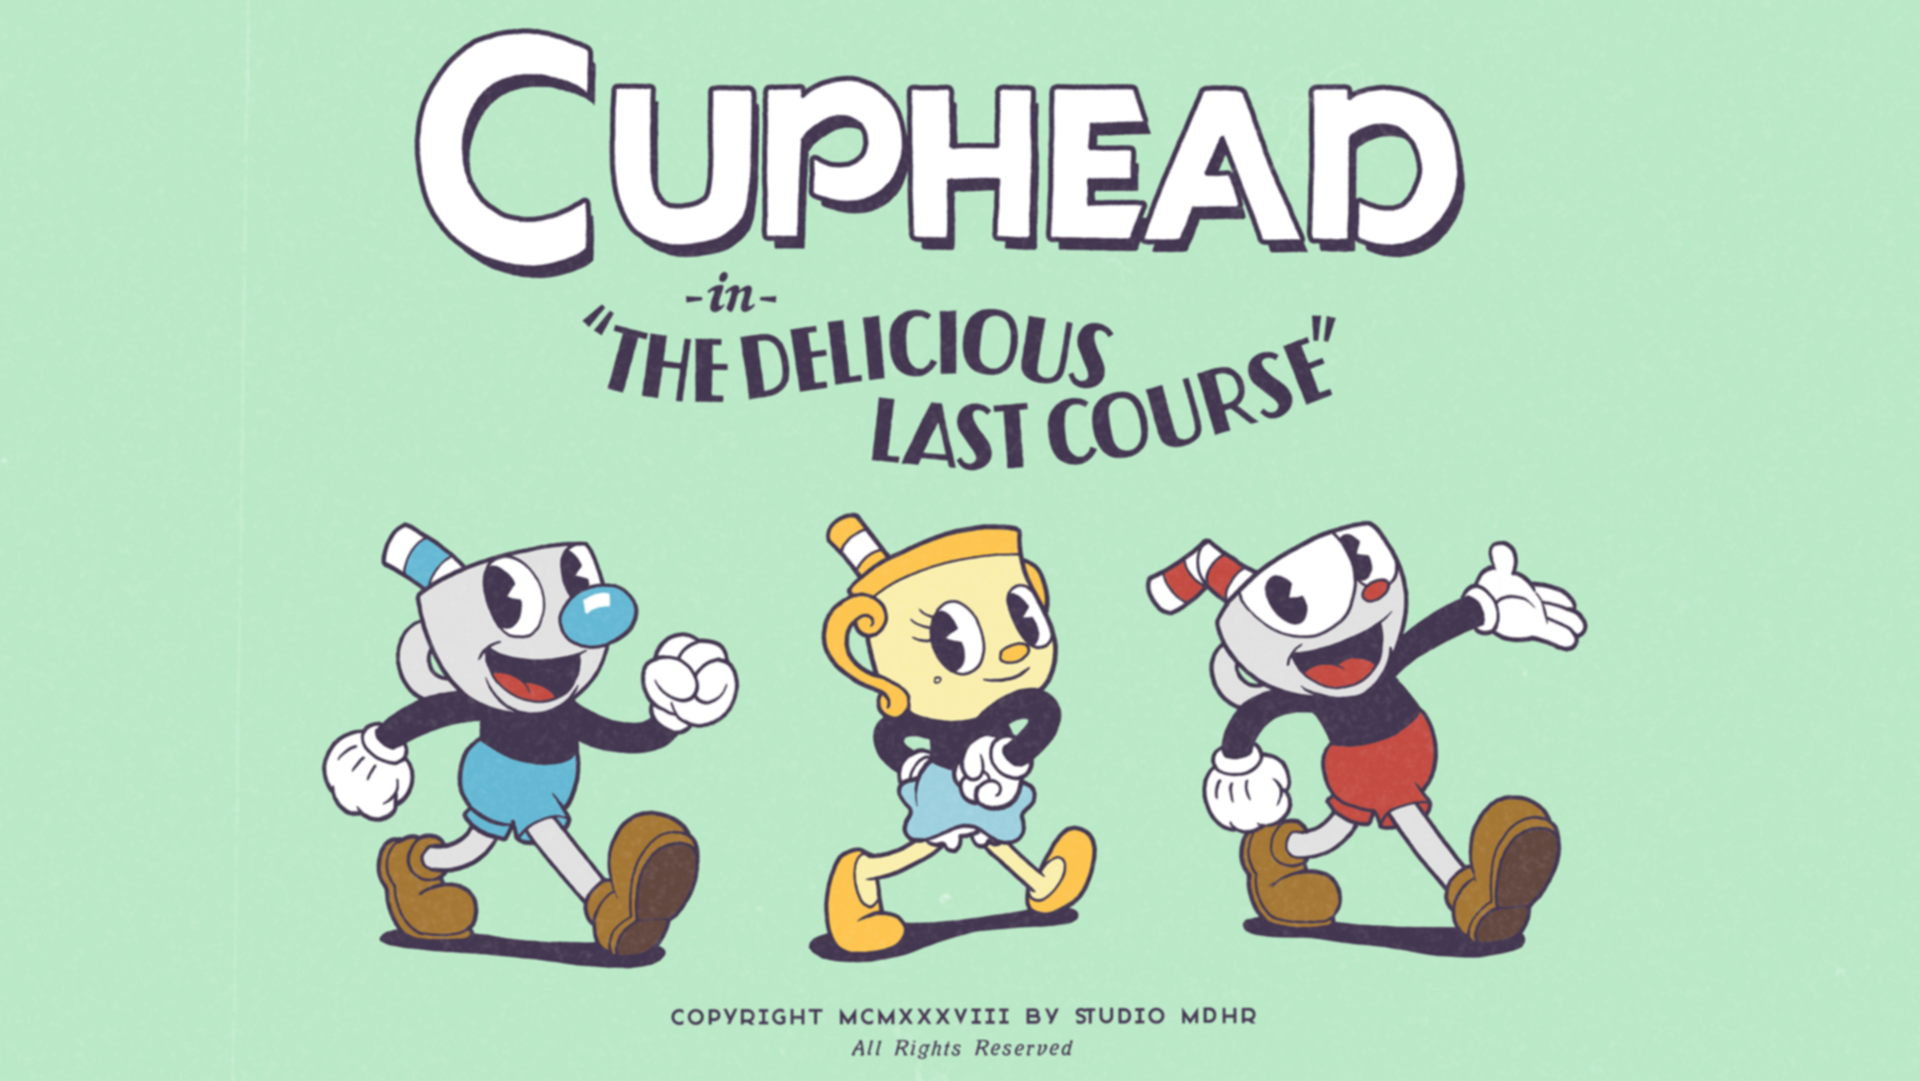 Cuphead: The Delicious Last Course expansion delayed into 2020